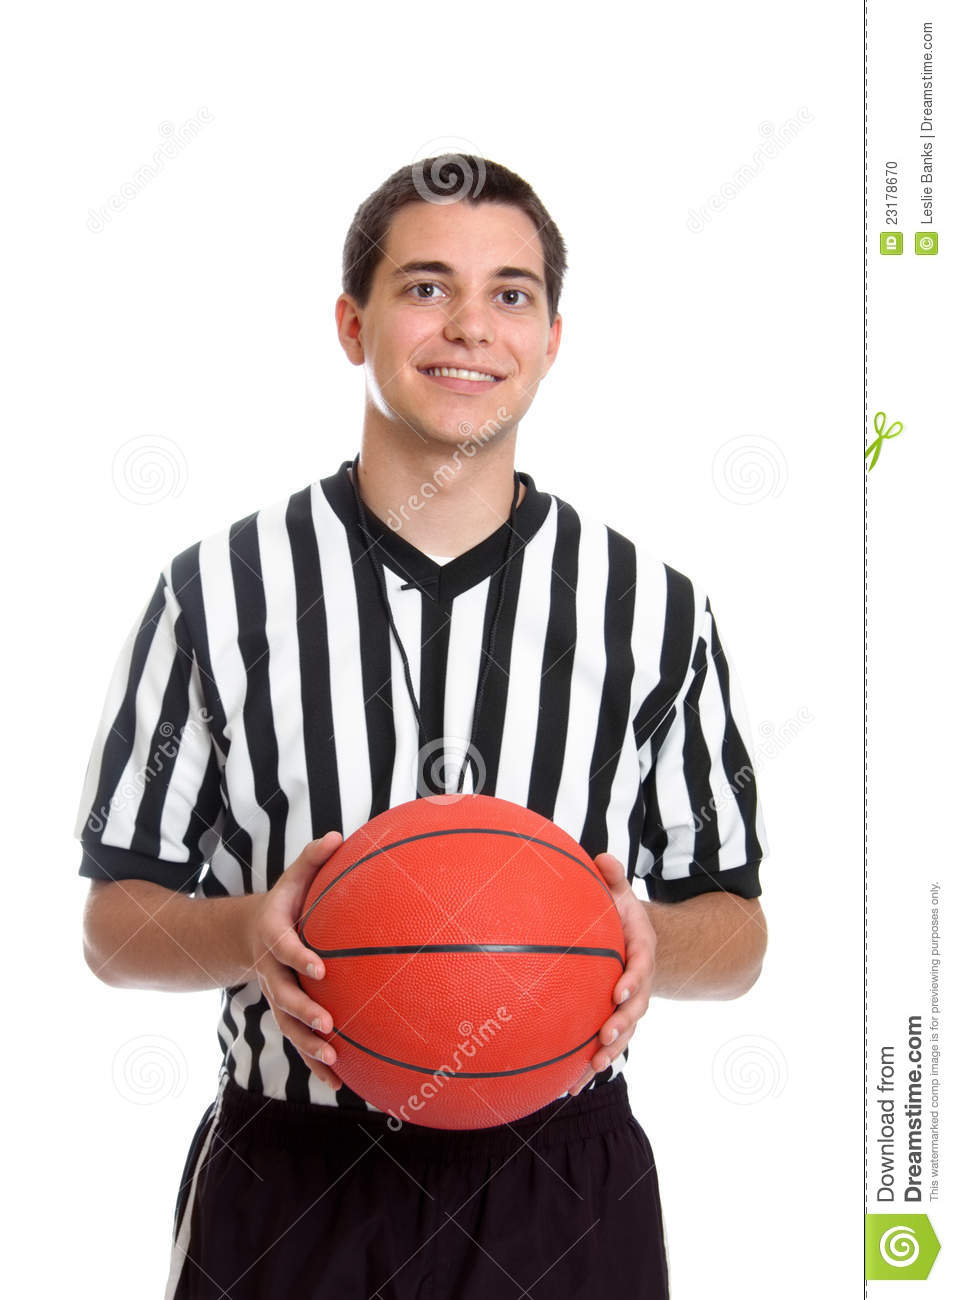 Basketball Referee Clipart